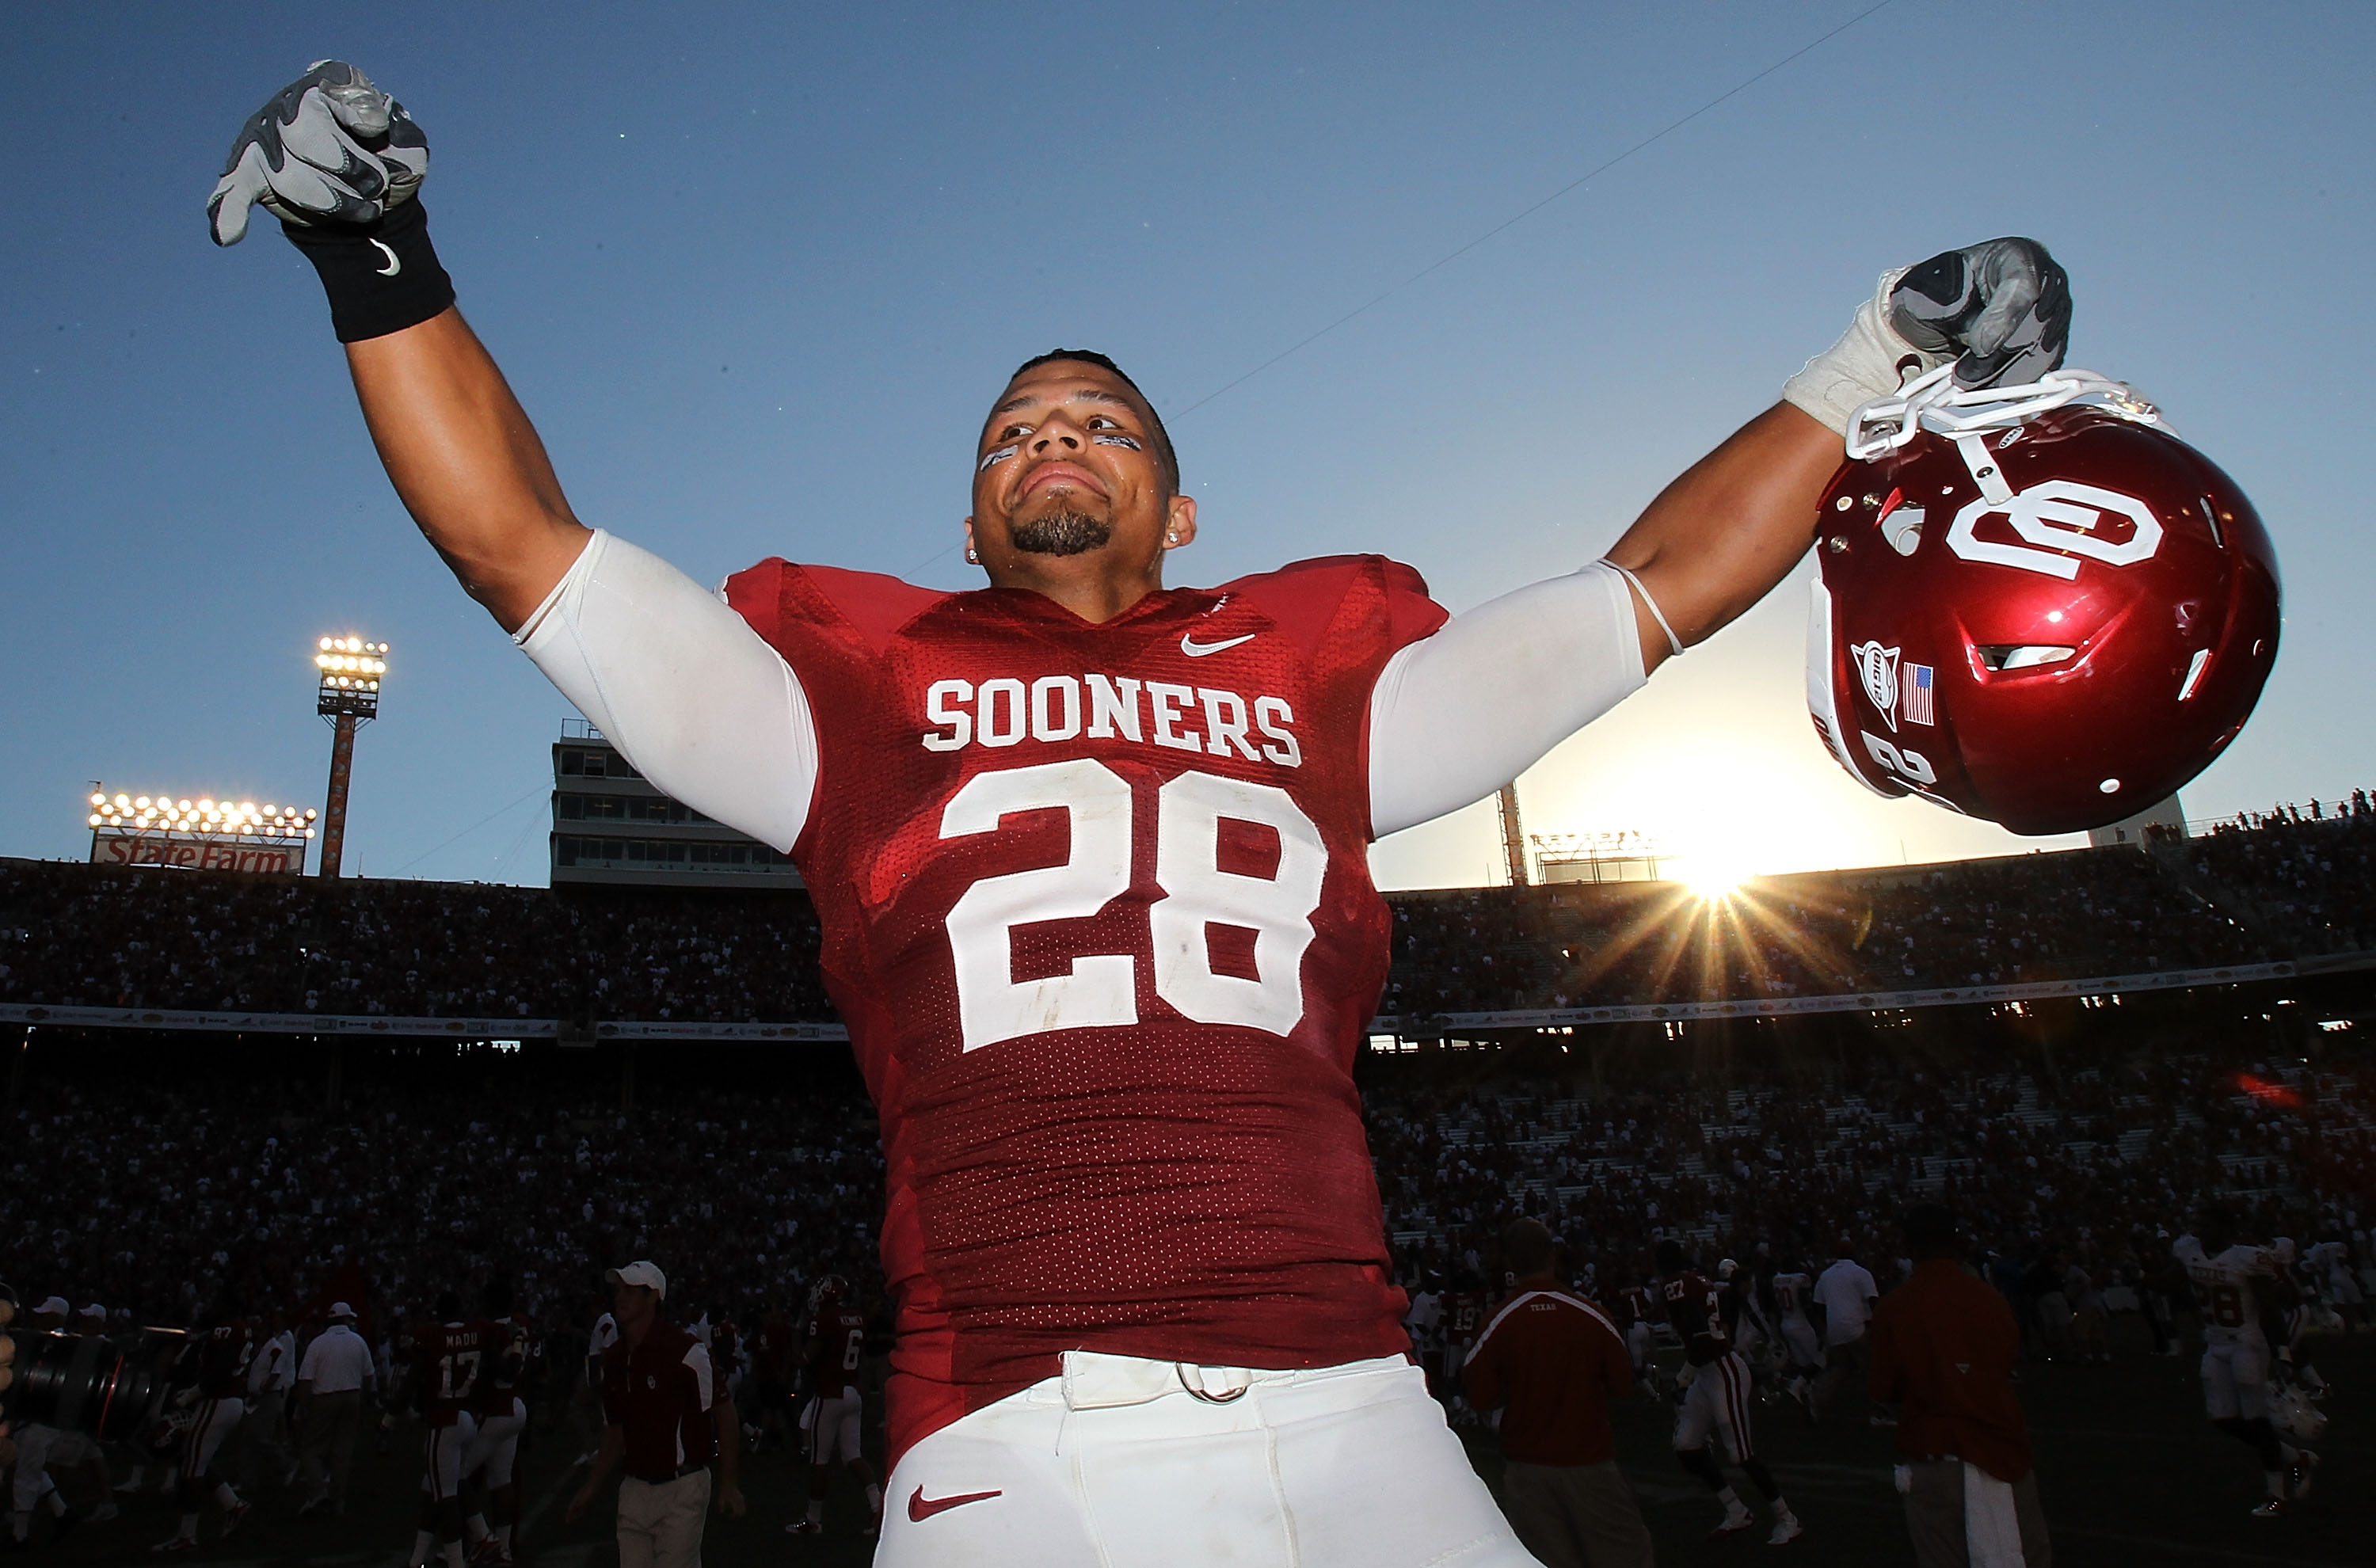 DALLAS - OCTOBER 02:  Linebacker Travis Lewis #28 of the Oklahoma Sooners celebrates a 28-20 win against the Texas Longhorns at the Cotton Bowl on October 2, 2010 in Dallas, Texas.  (Photo by Ronald Martinez/Getty Images)